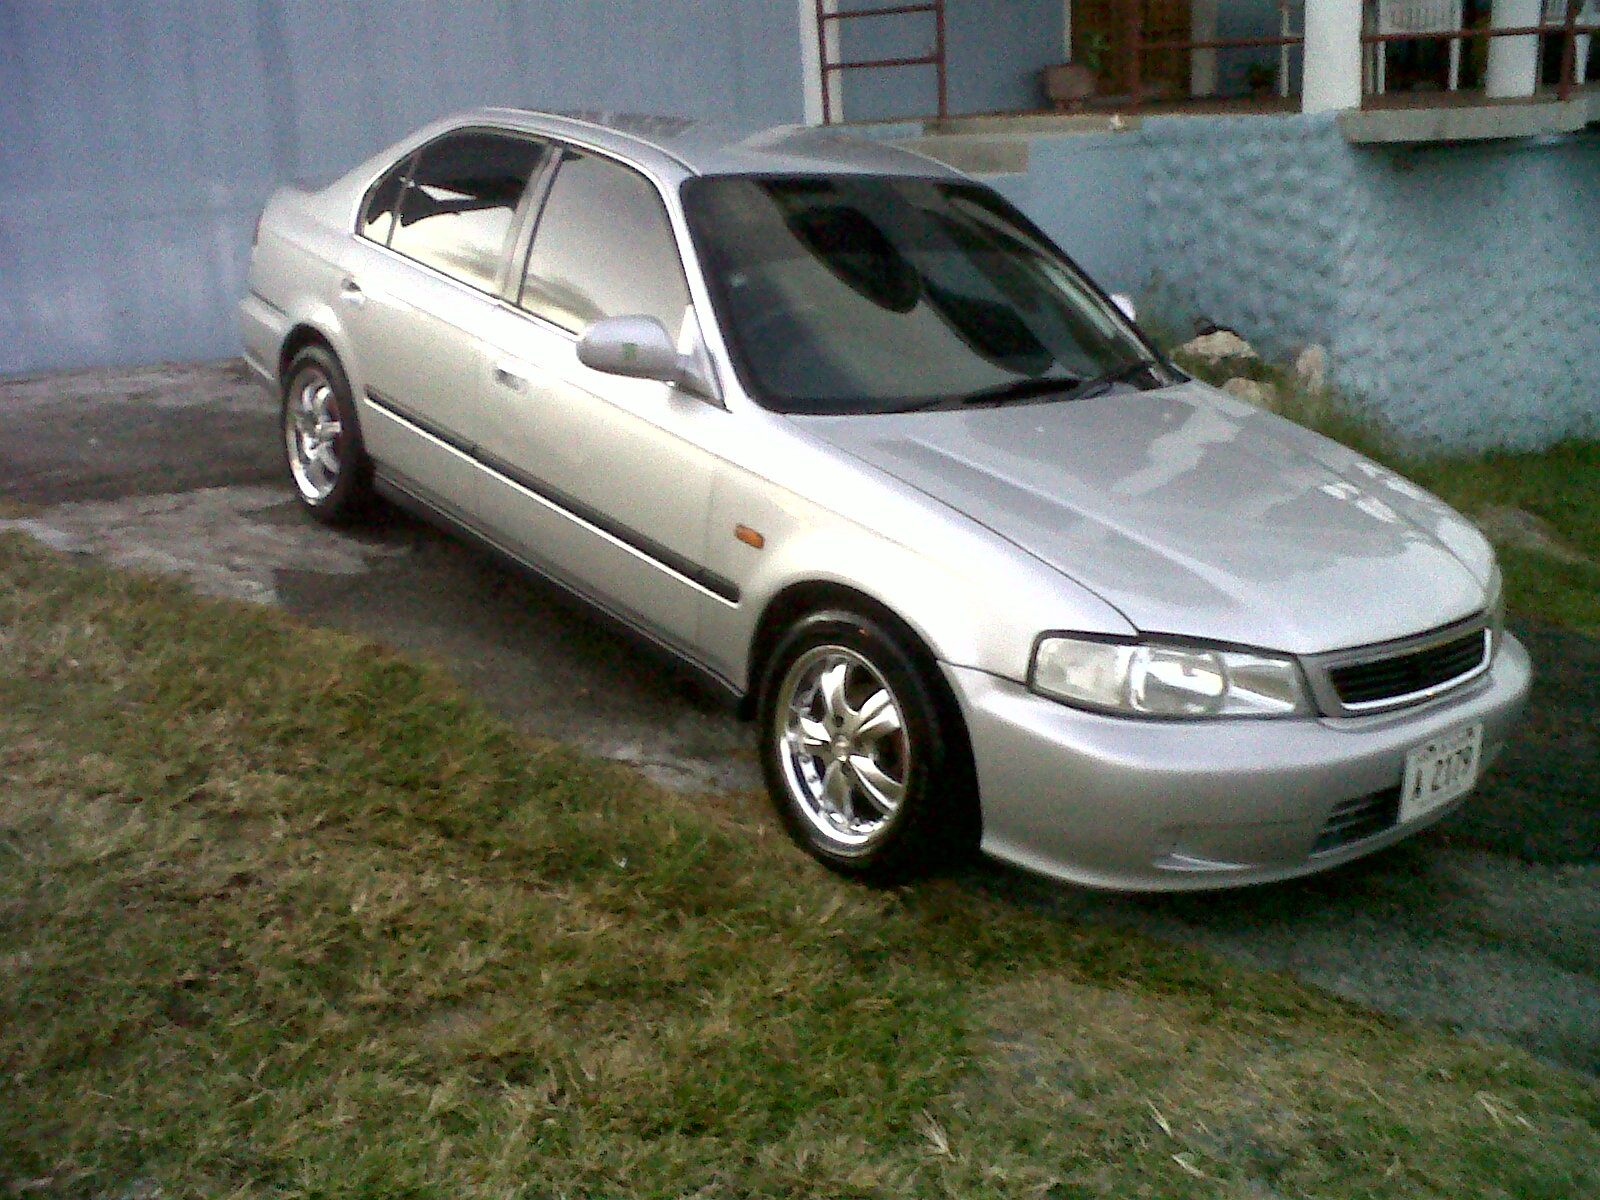 cars 4 sale | UHSA Med School Classifieds